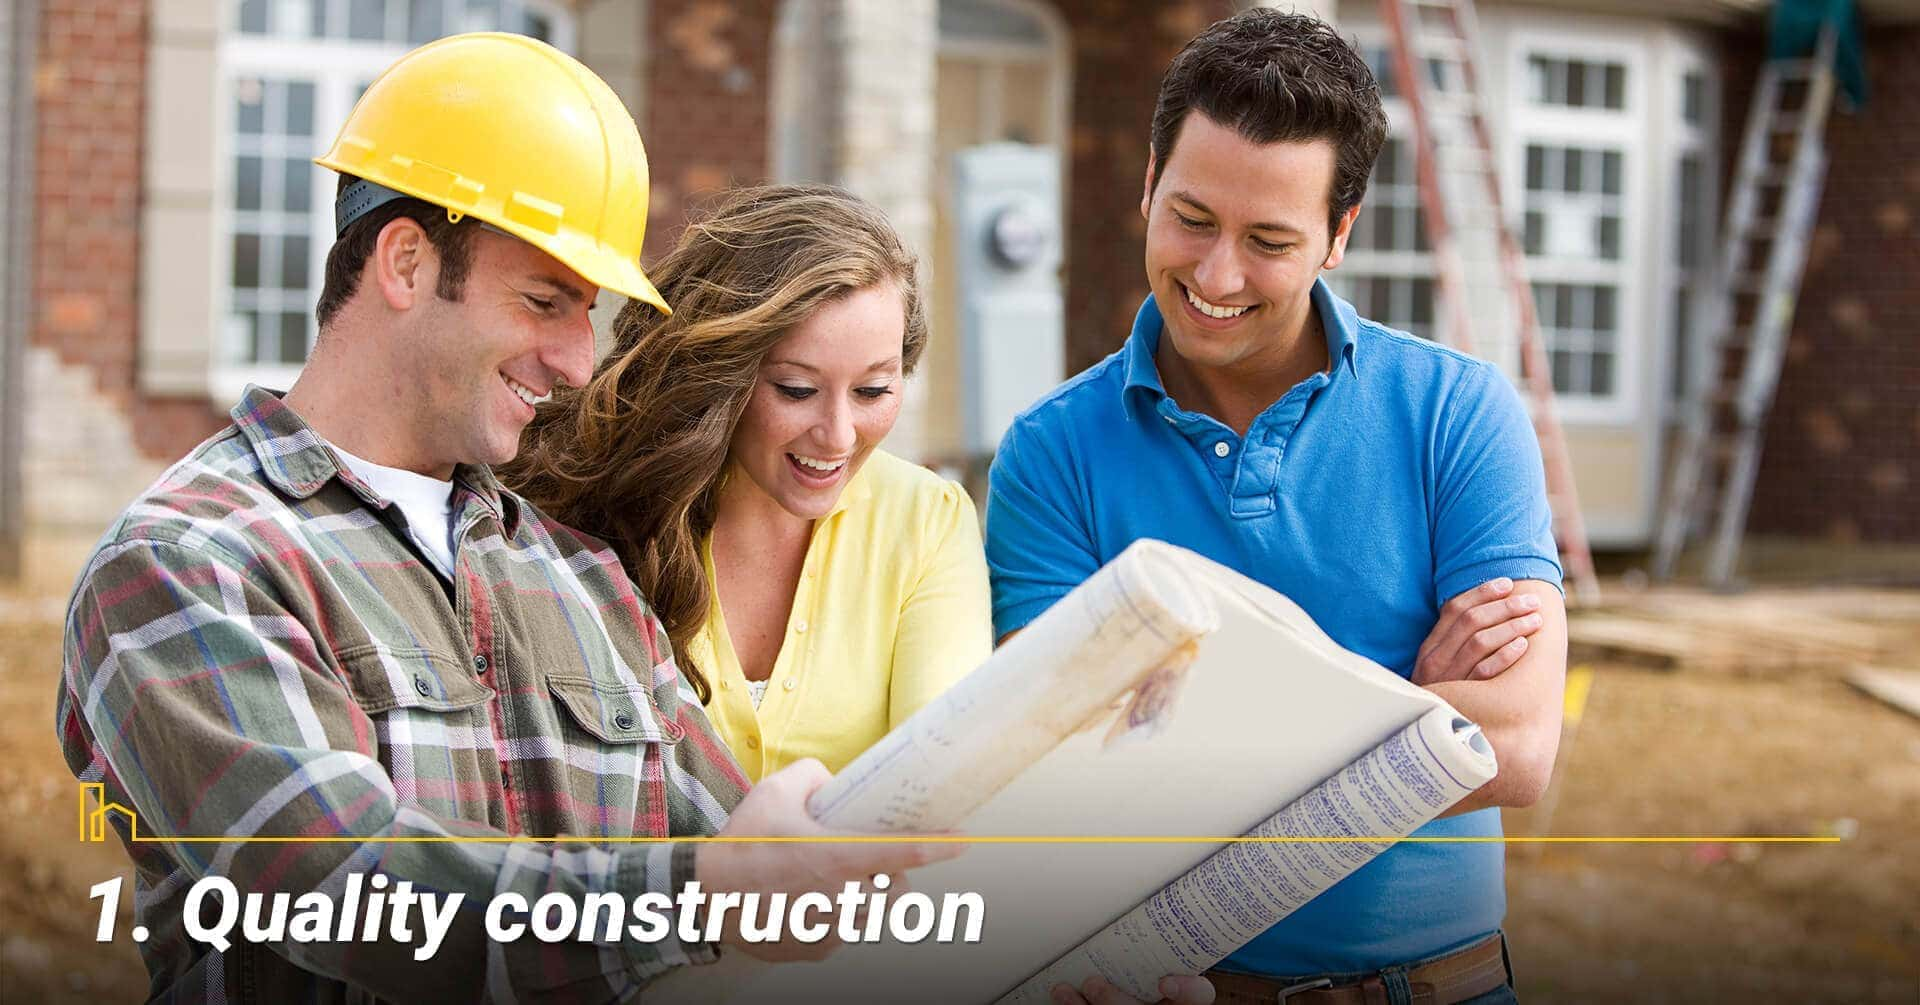 Quality construction, buying new construction home